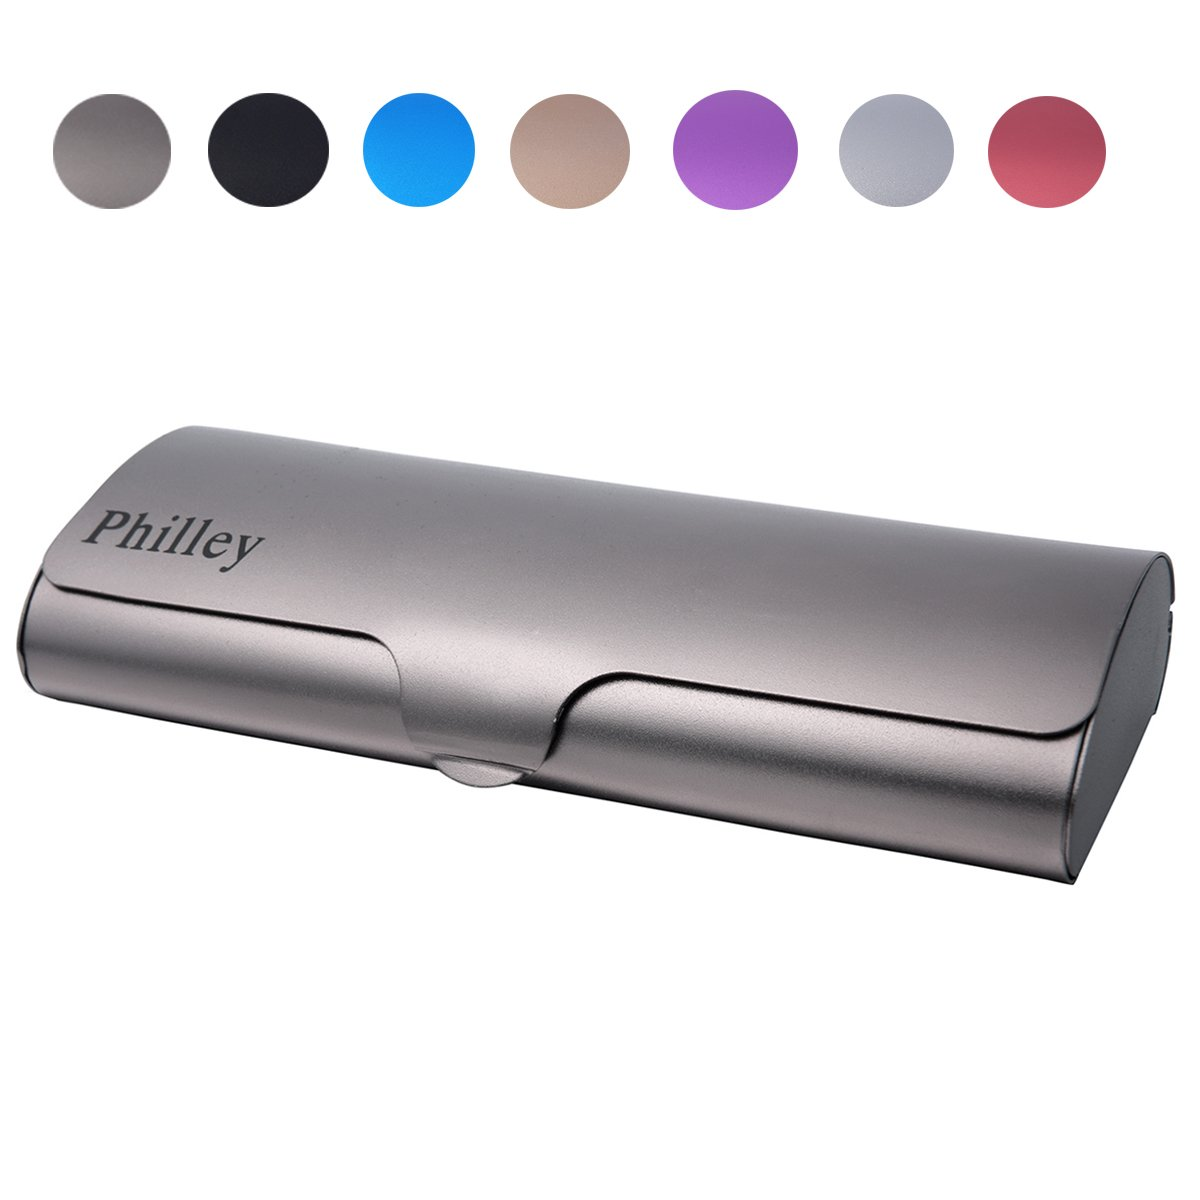 Philley Aluminum Ultra-Light Frosted Matte Hard Myopia Eyeglasses Case (Gun Gray) by Philley